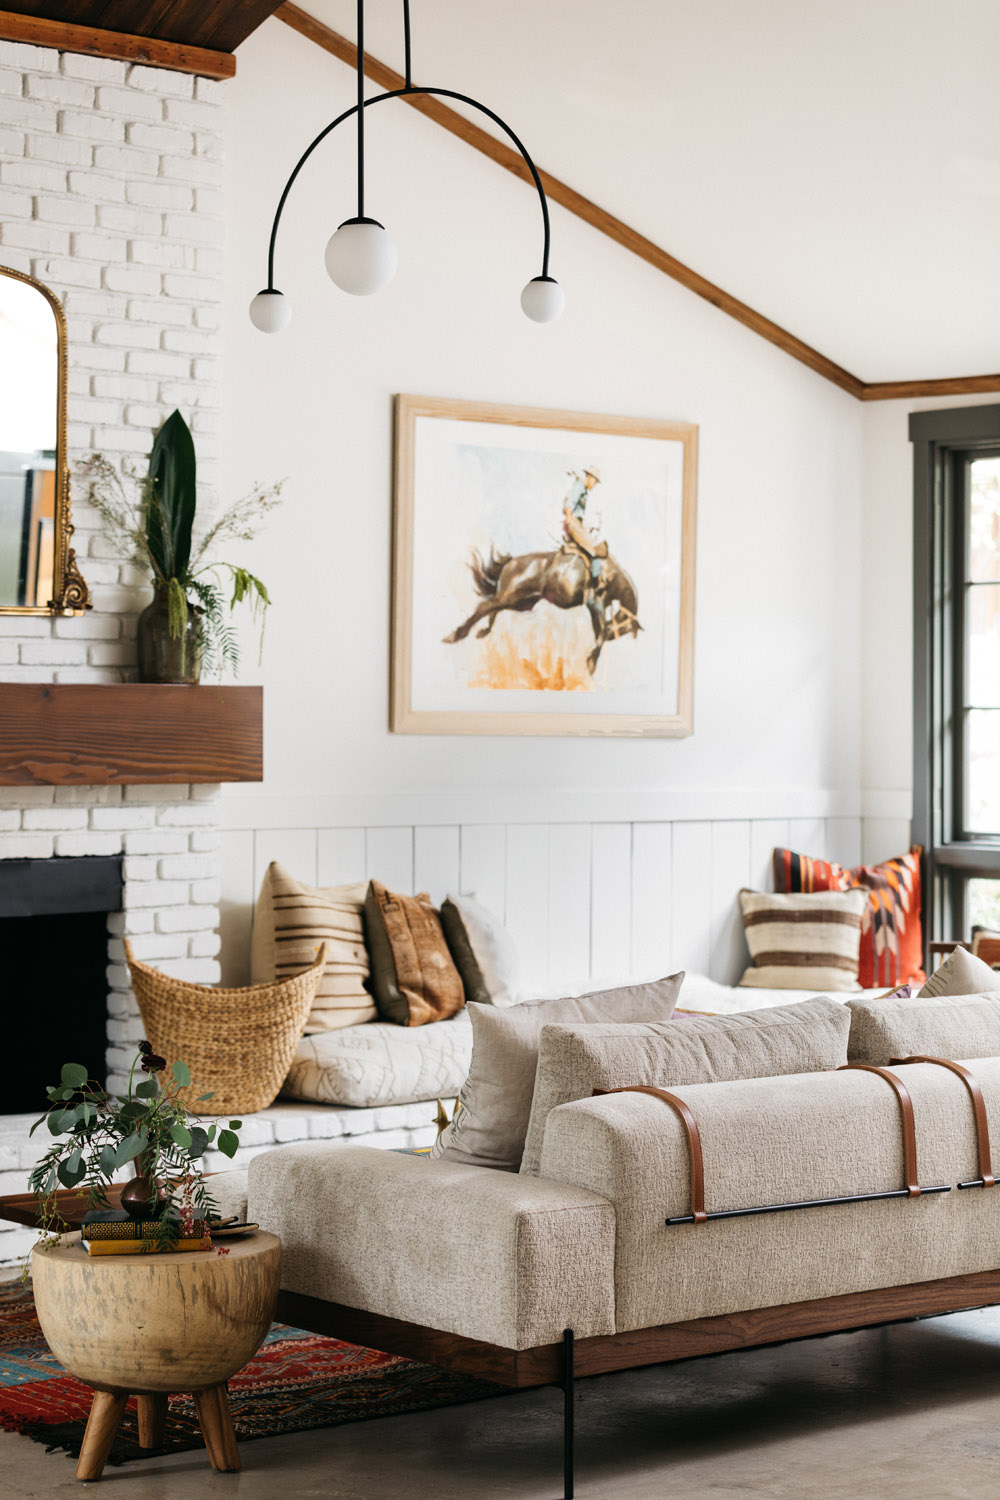 The Nordroom - A Beautifully Restored Ranch Home in California